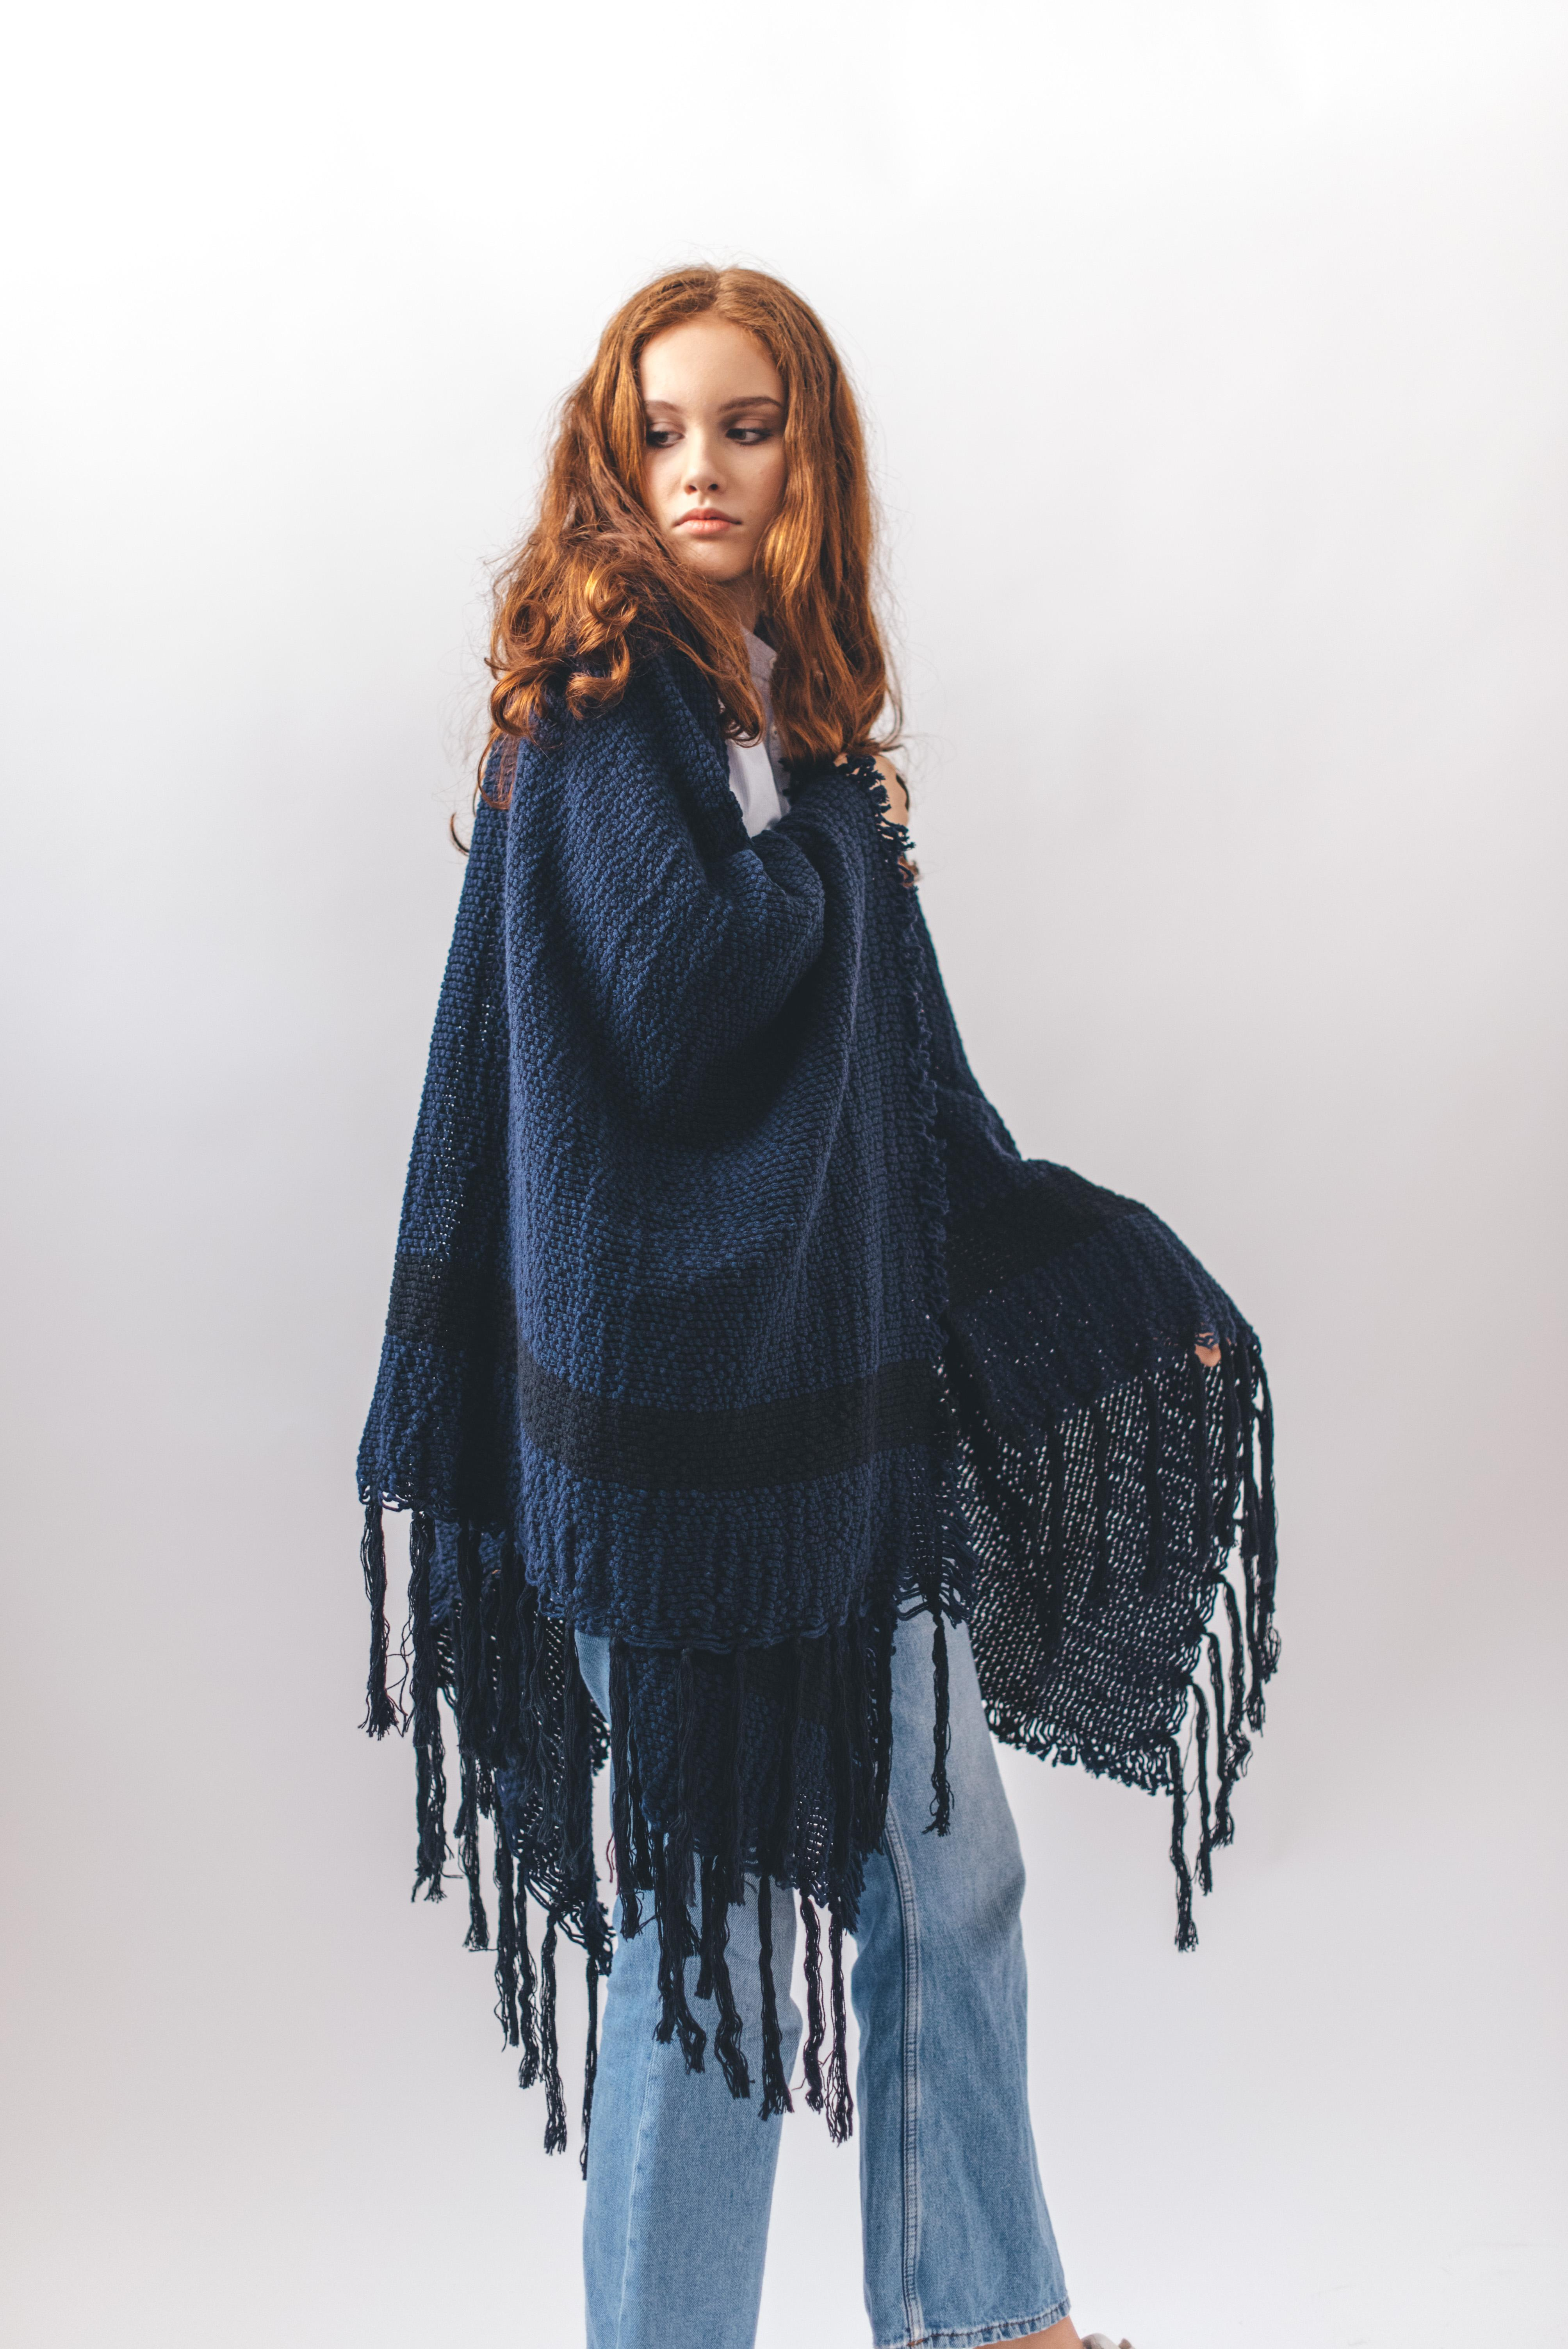 Limited Edition - Limited Edition - PONCHO GAUCHO - 1